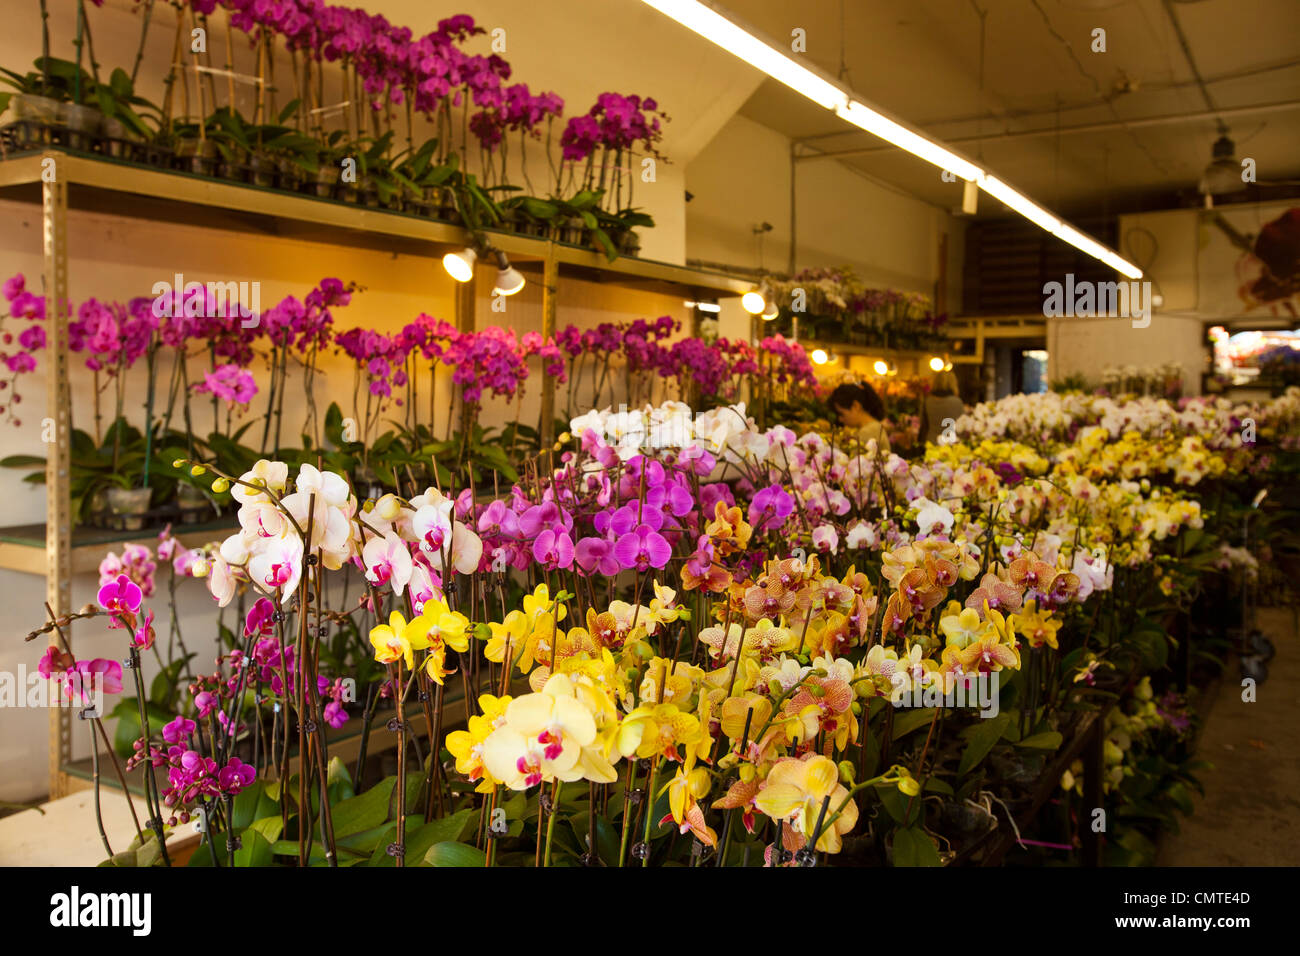 Flowers los angeles flower district stock photos flowers los flower district los angeles california usa stock image mightylinksfo